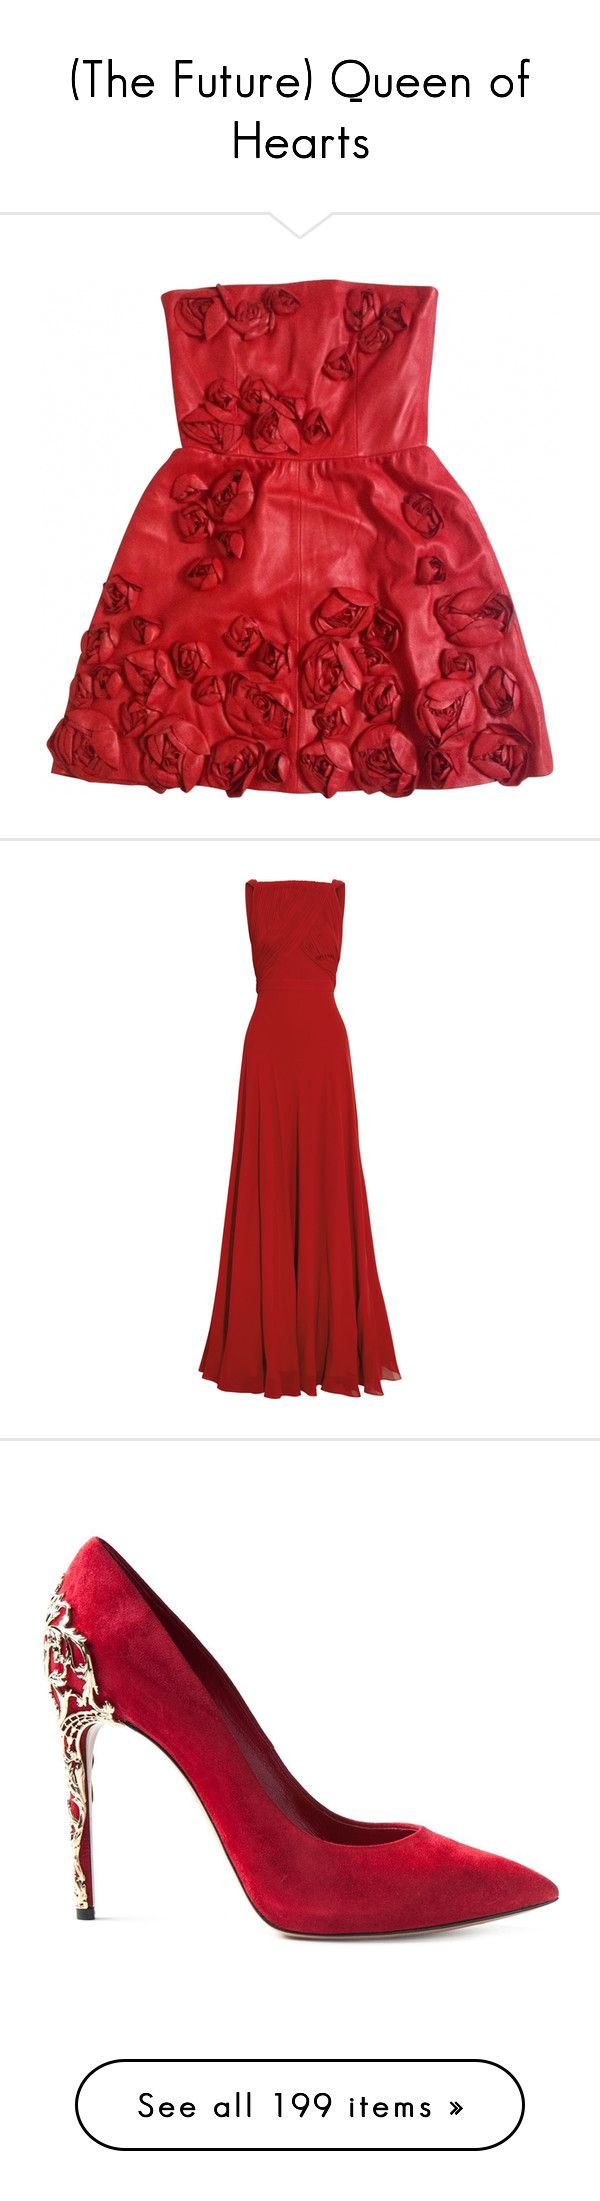 (The Future) Queen of Hearts by lonely-wallflower on Polyvore featuring polyvore, fashion, clothing, dresses, red dresses, red flower dress, flower dress, red dress, blossoms dresses, gowns, vestidos, long dresses, formal dresses, long formal evening dresses, long red dress, red evening dresses, formal gowns, shoes, pumps, heels, footwear, обувь, red, red leather shoes, red heel pumps, red shoes, heels & pumps, heels stilettos, beauty products, fragrance, fillers, makeup, perfume…